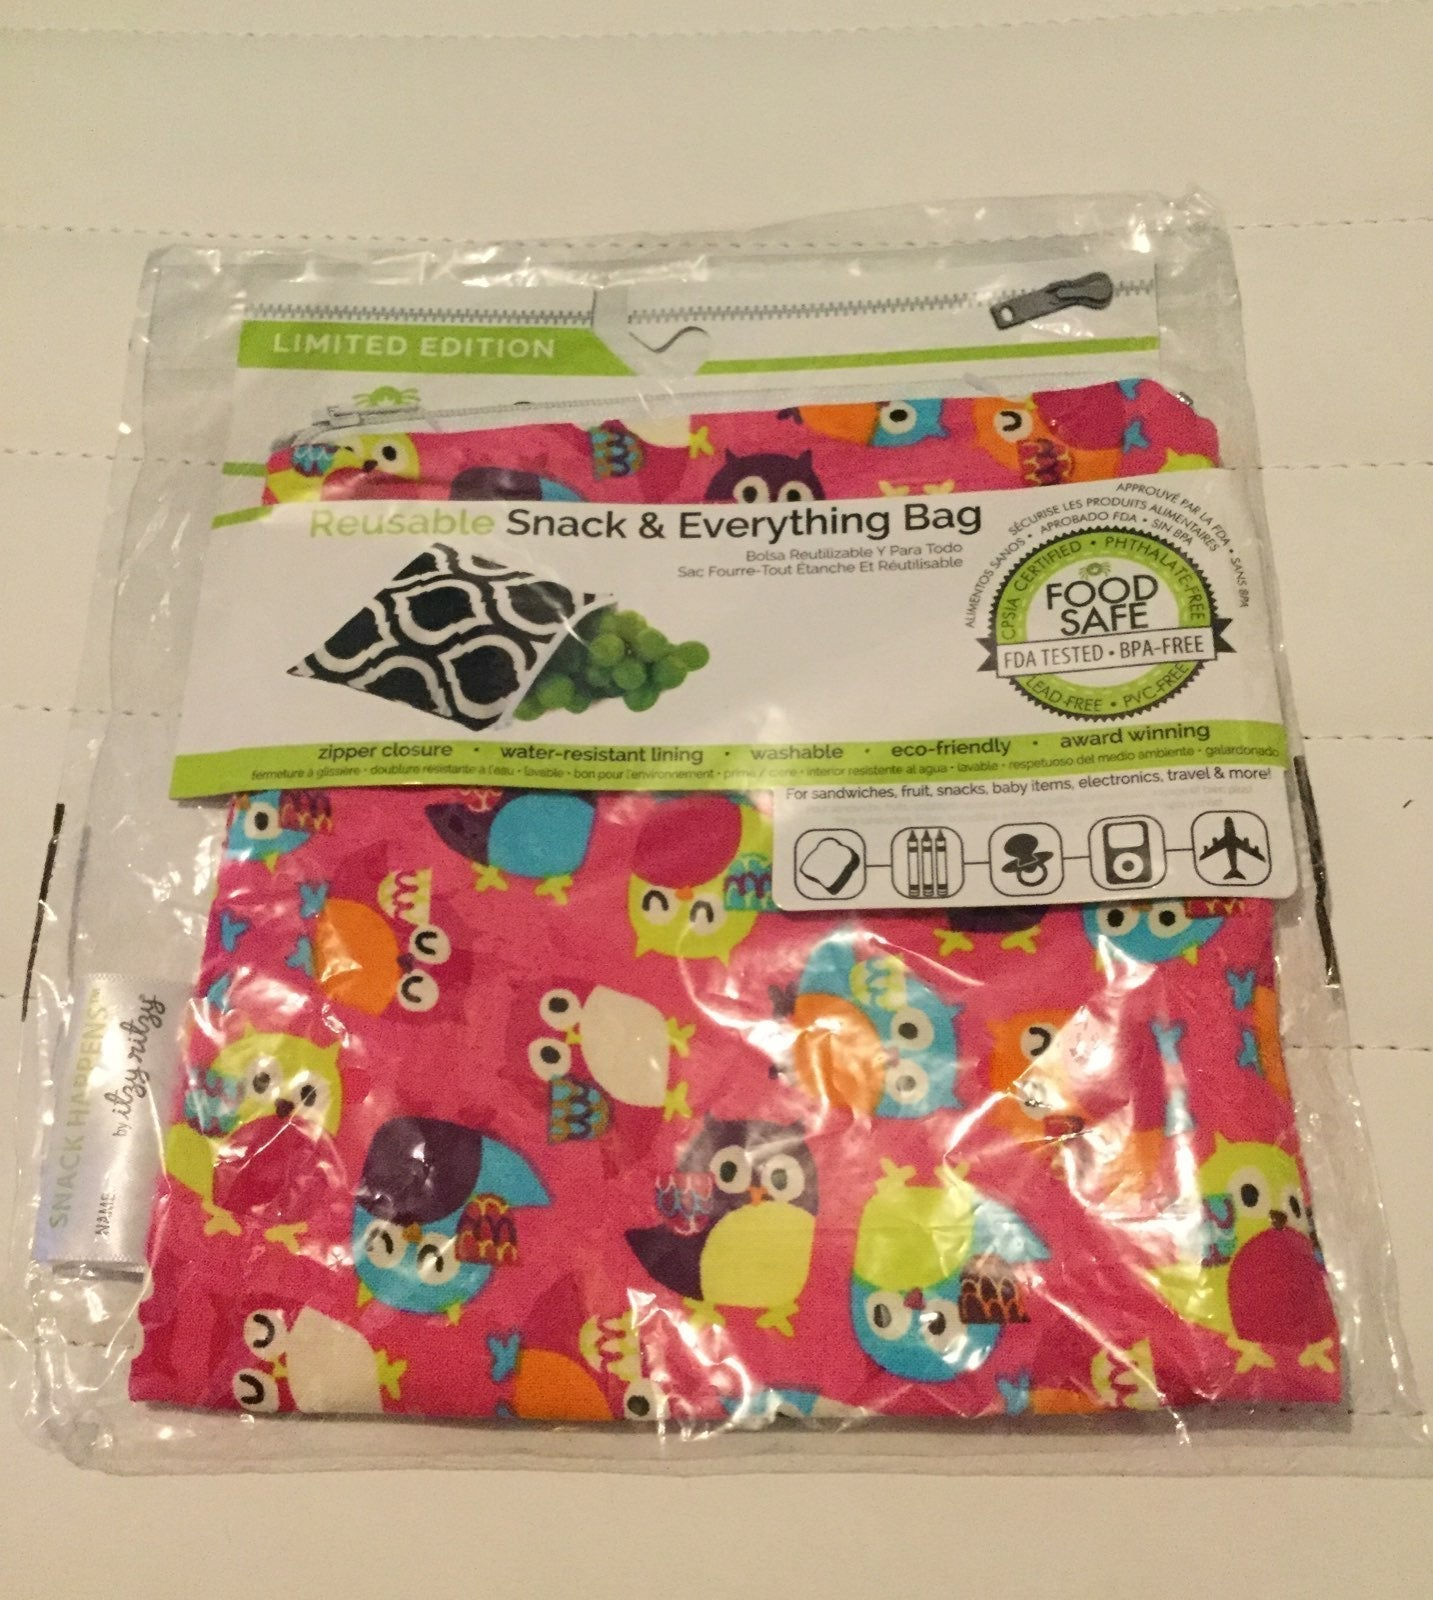 Itzy Ritzy Reusable Snack Everything Bag